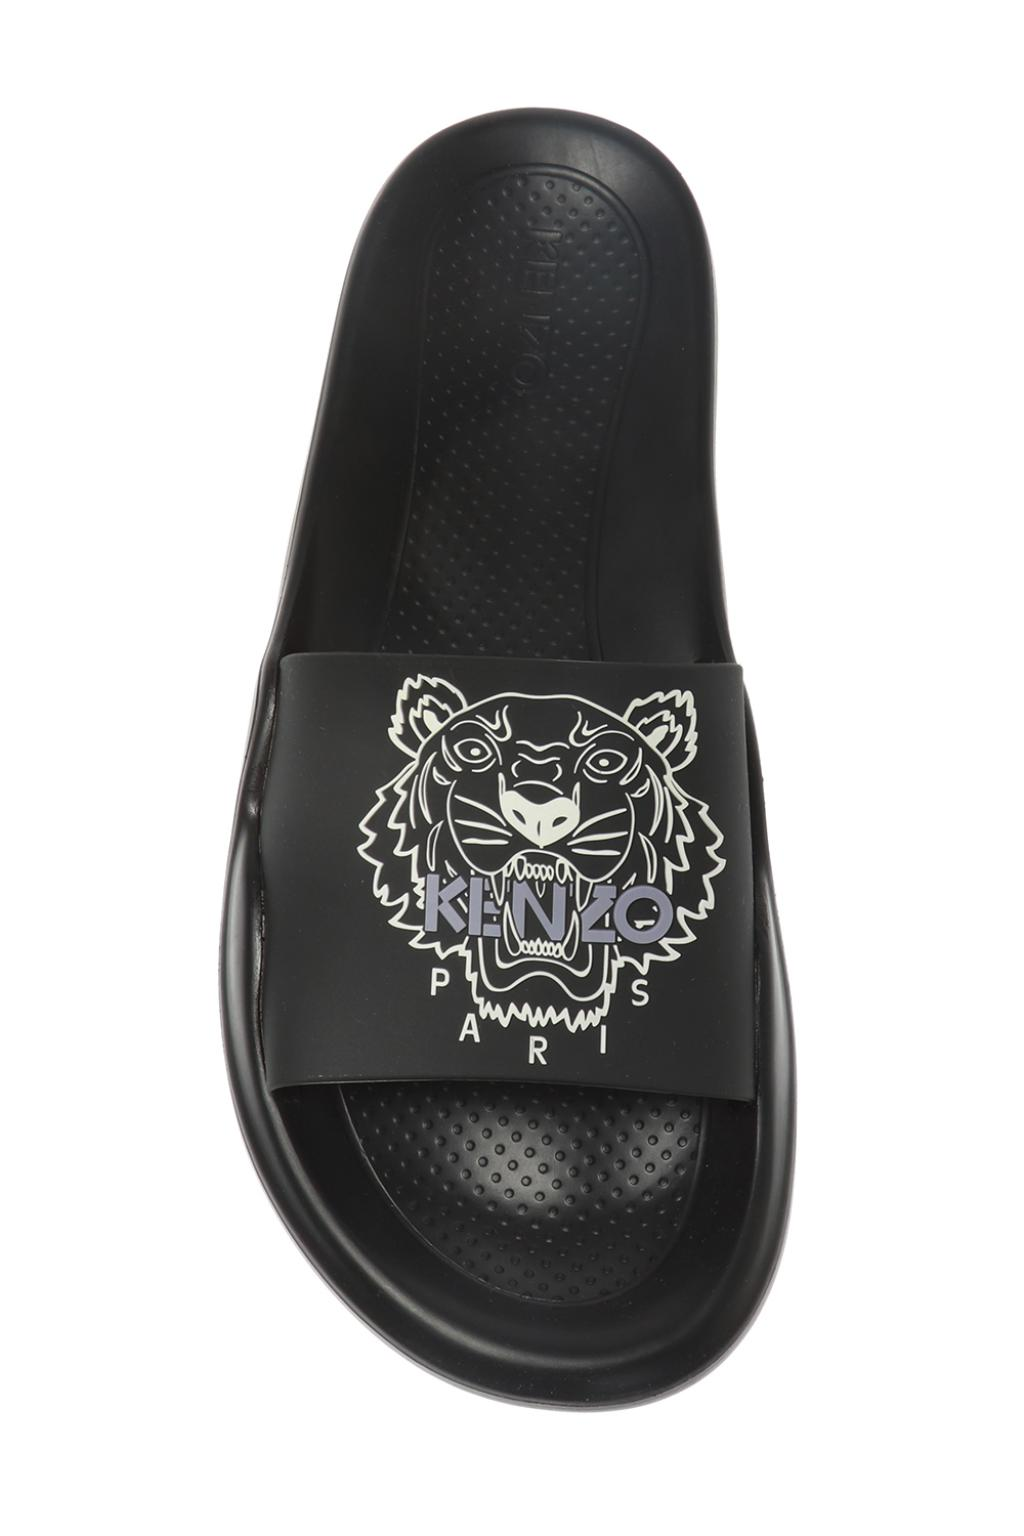 Kenzo 'Tiger' slides with logo